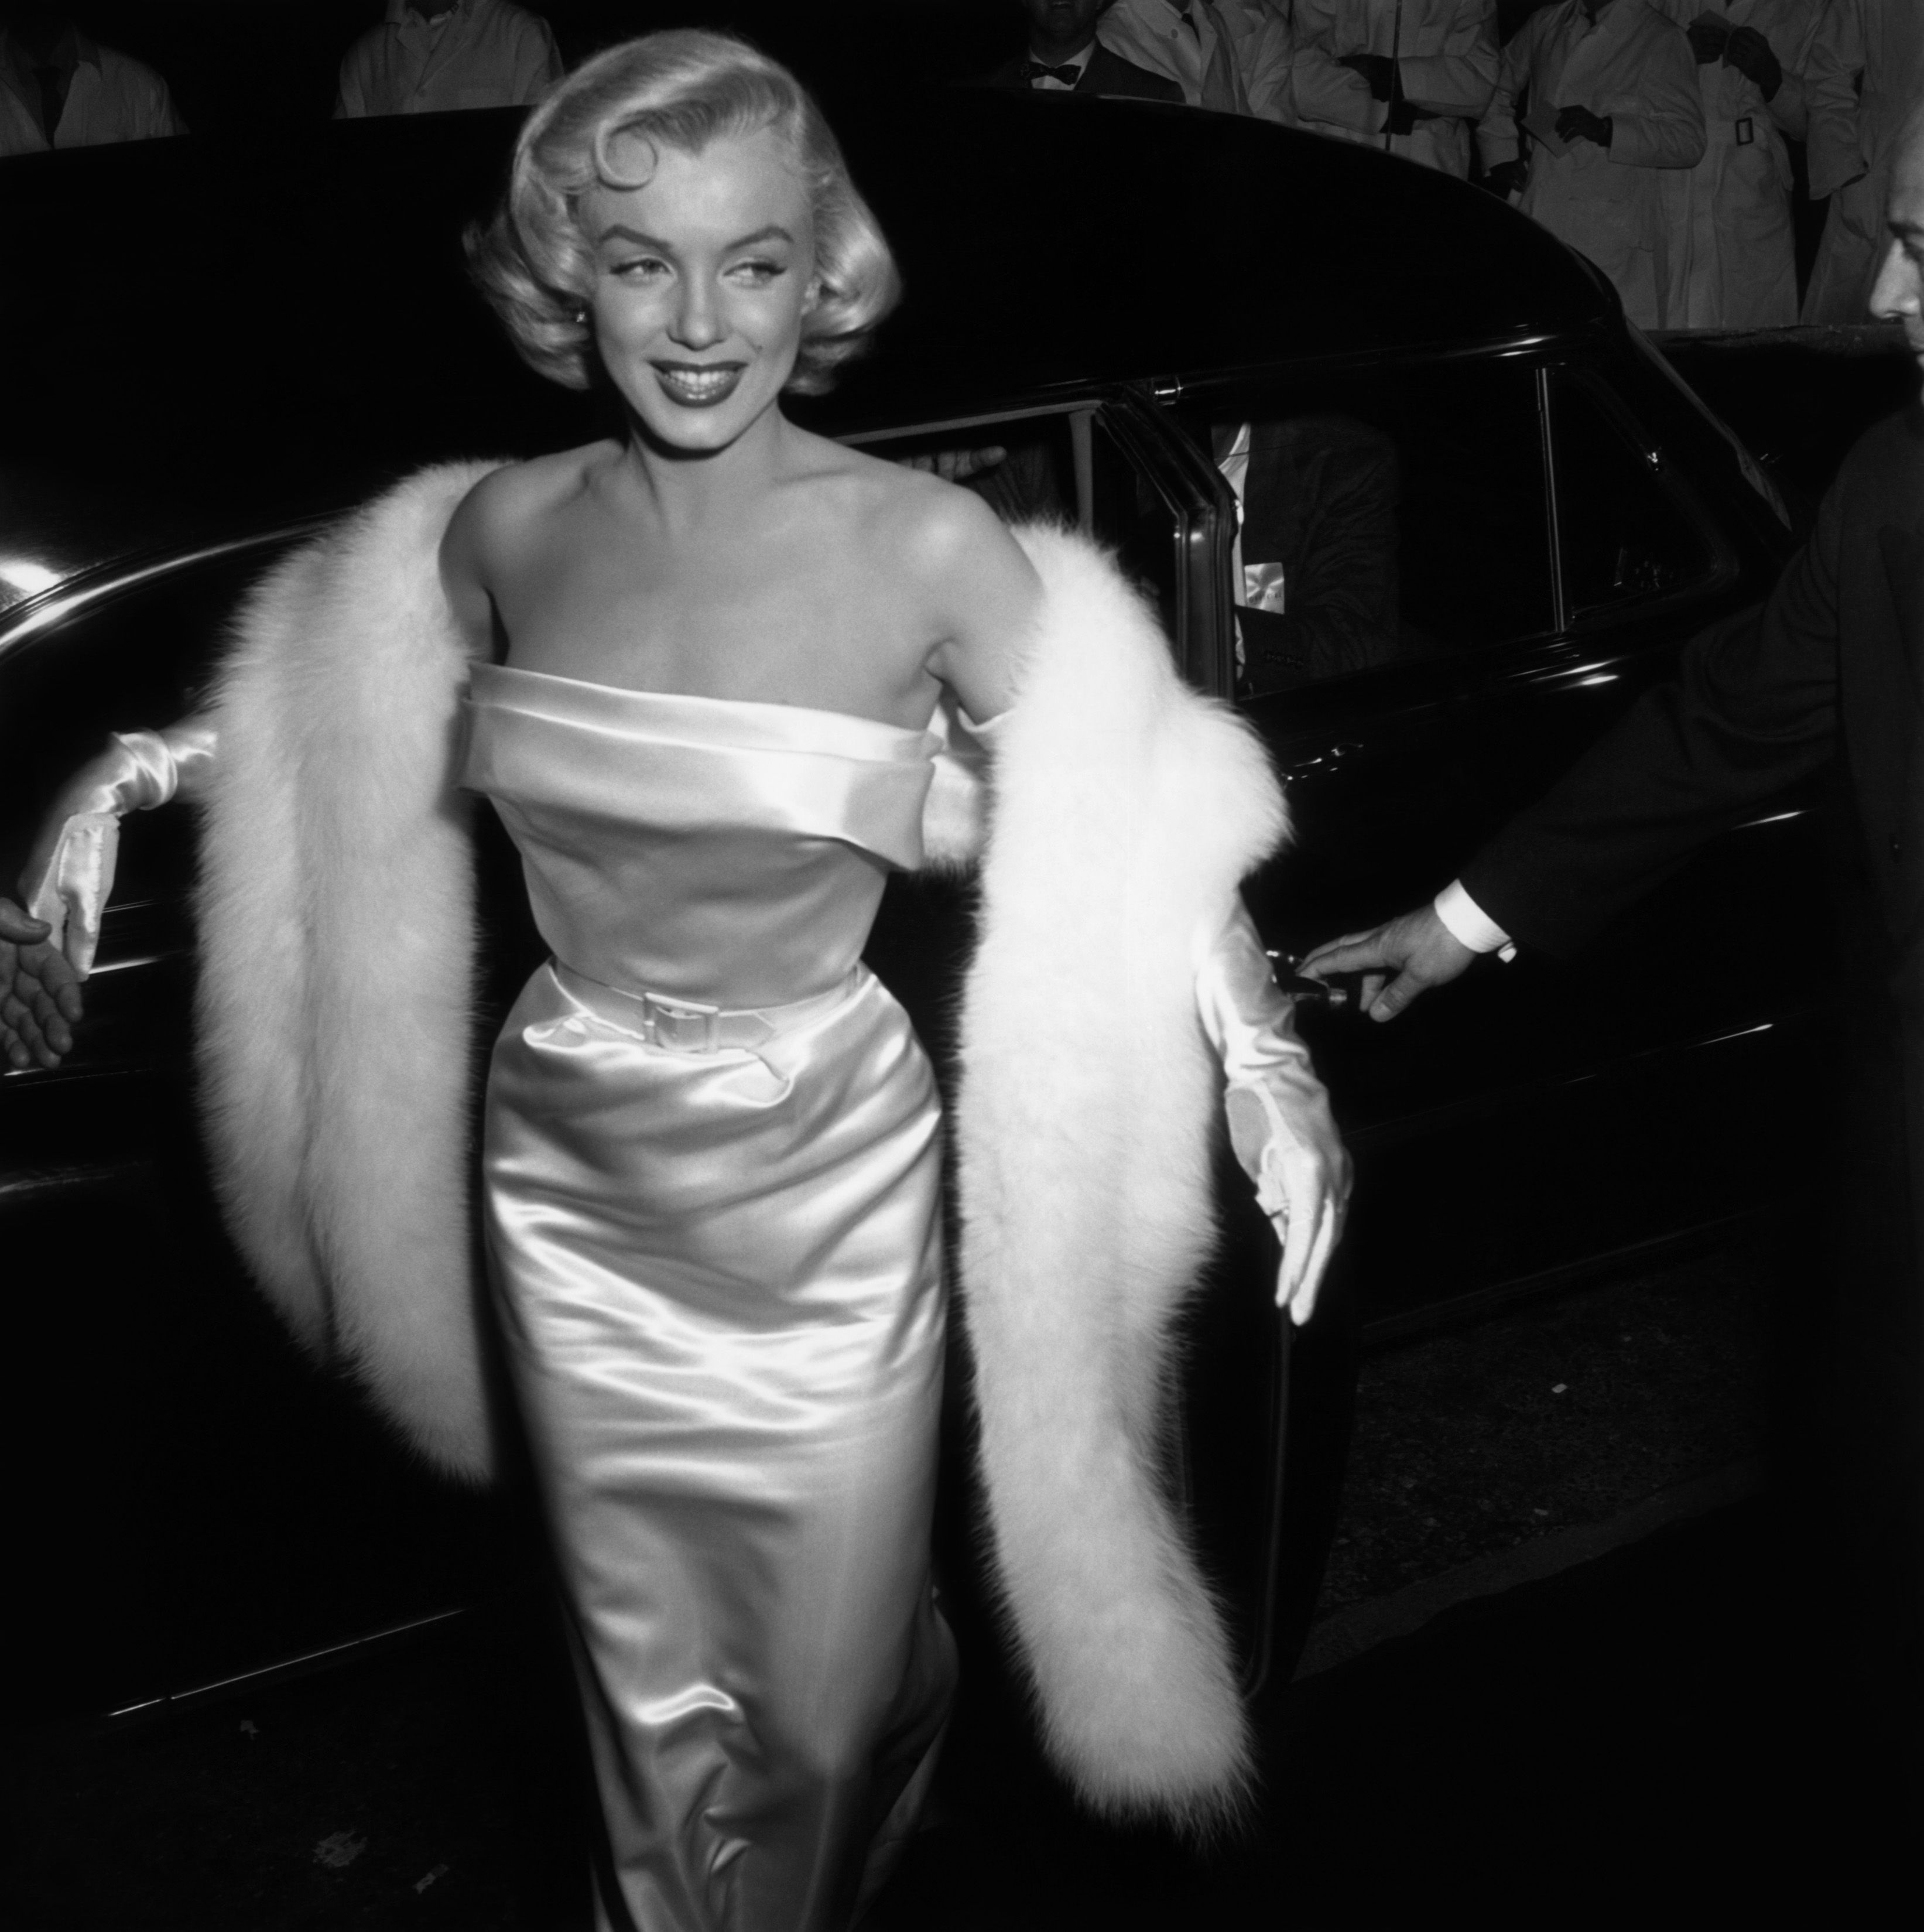 30+ Vintage Photos of Celebrities on the Red Carpet